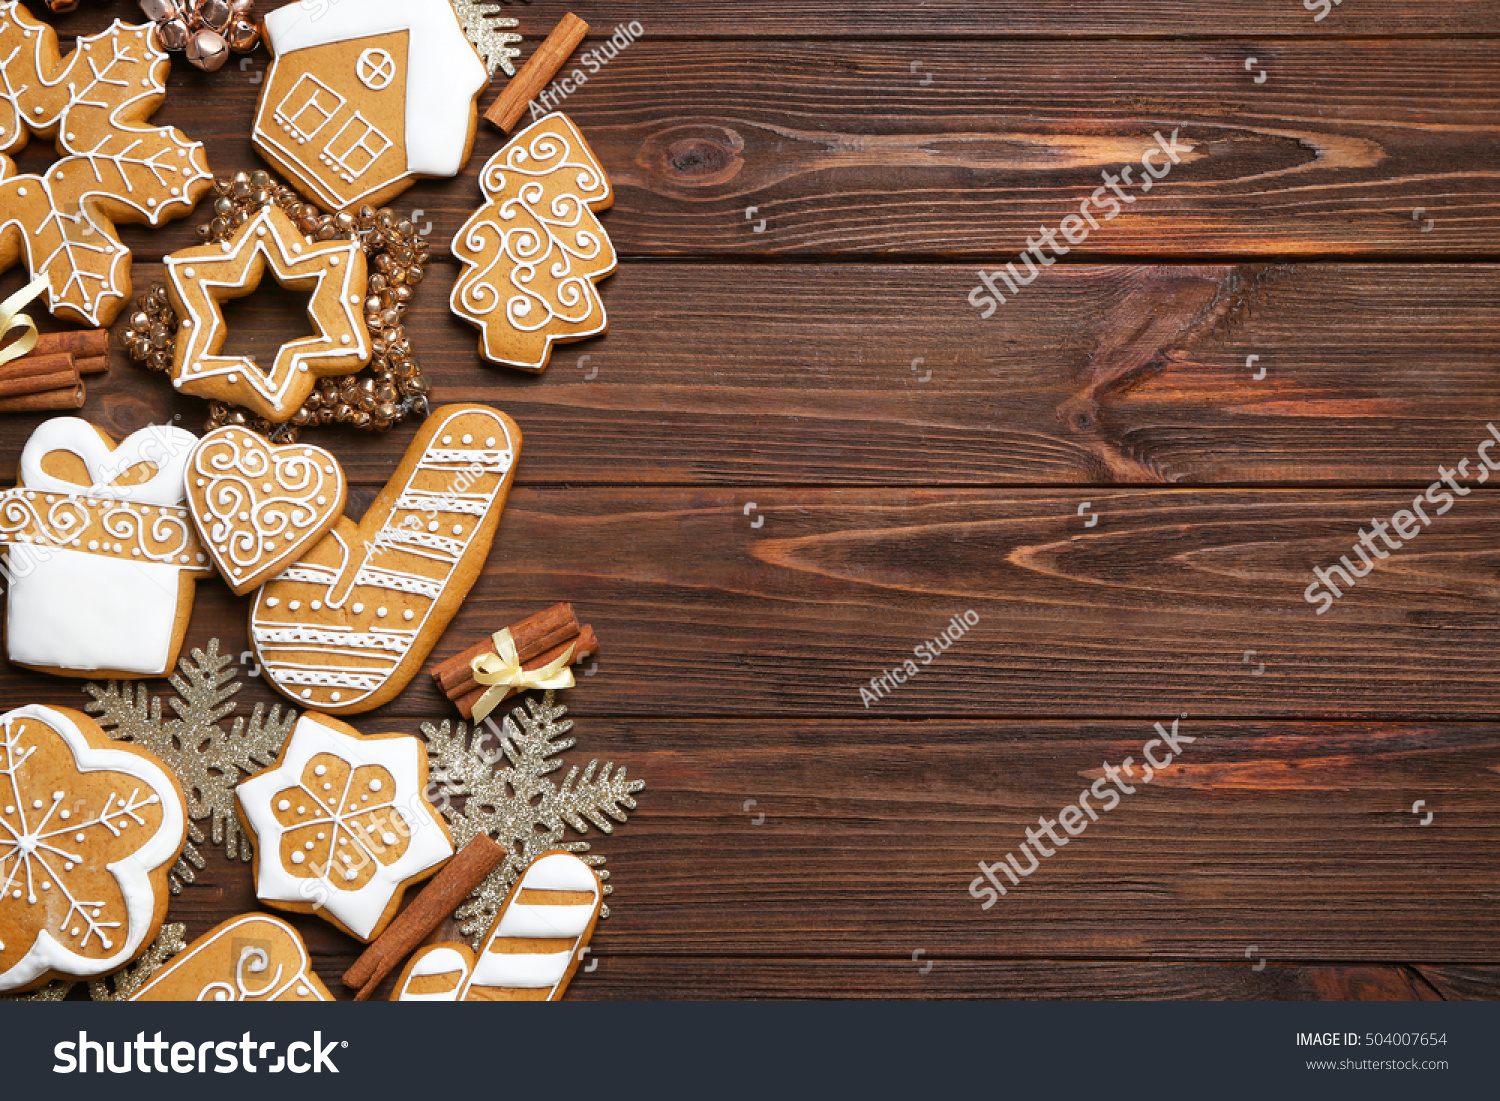 843b2d7a95179 Tasty Gingerbread Cookies Christmas Decor On Stock Photo (Edit Now ...